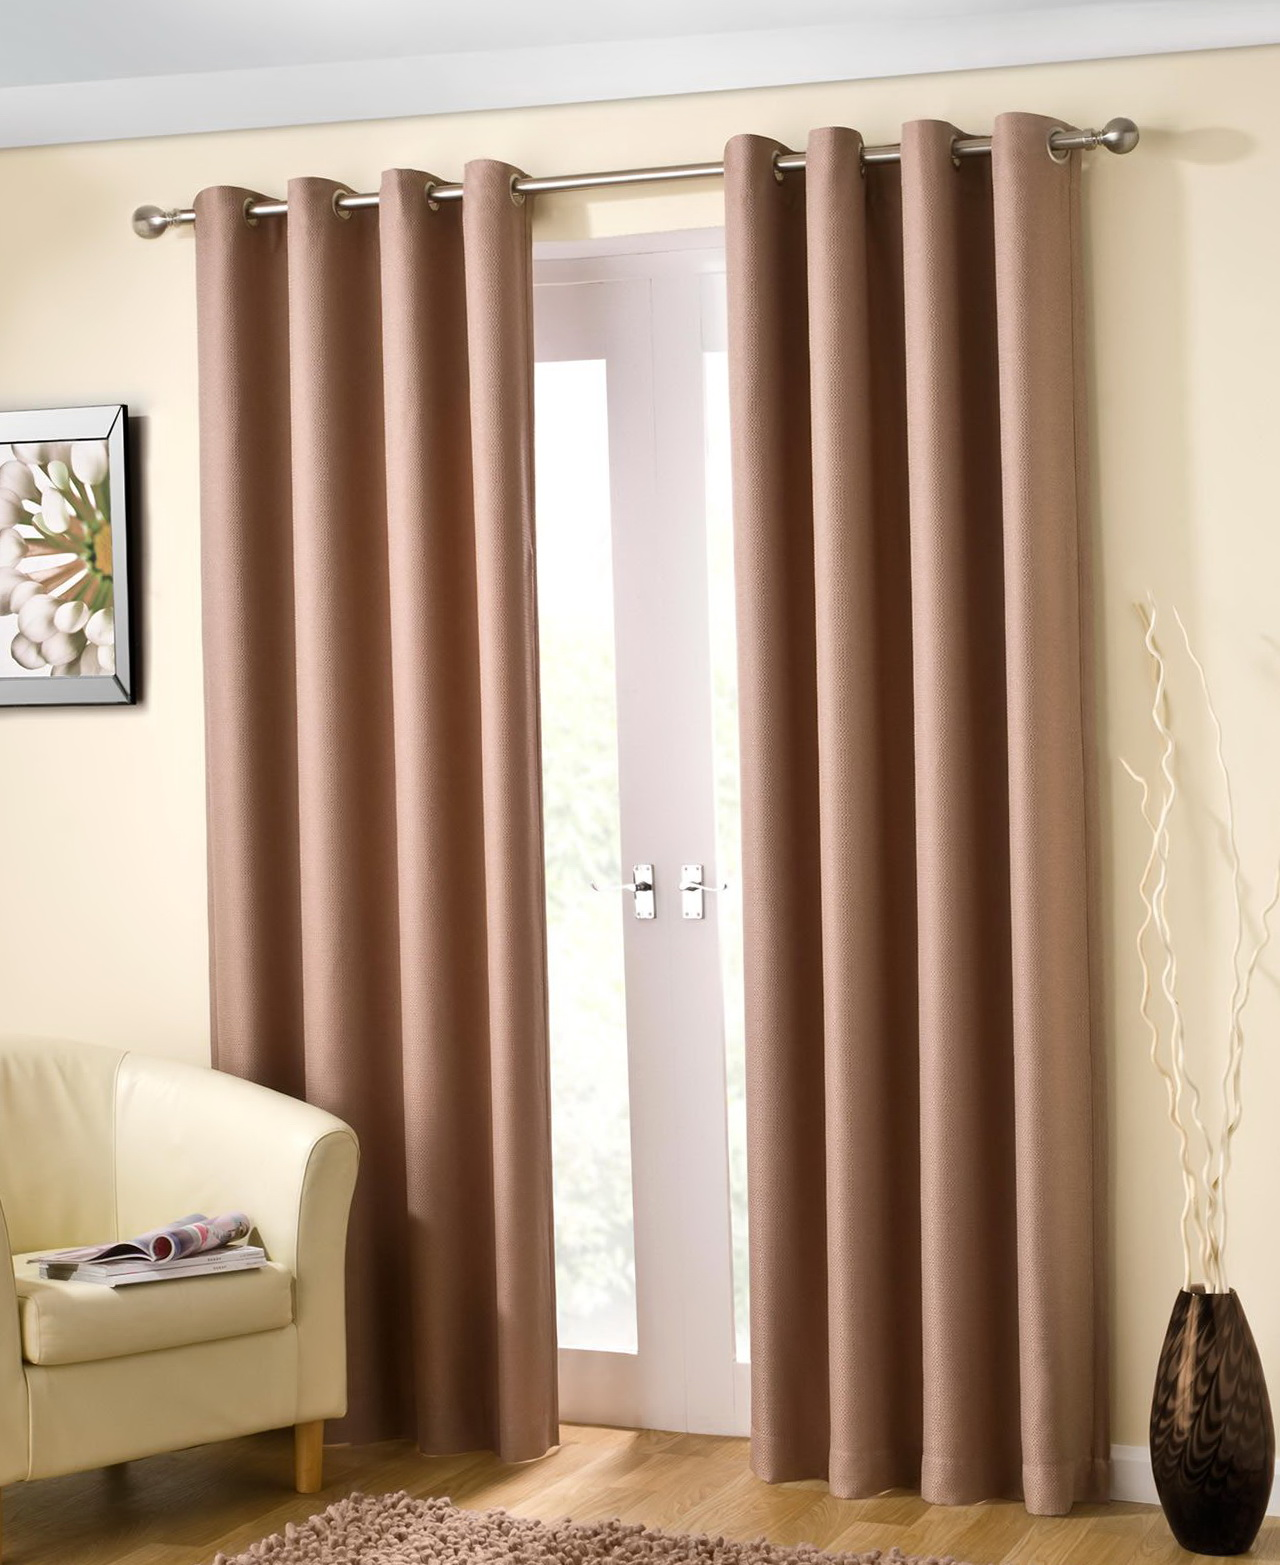 Thermal Lined Curtains 90 X 90